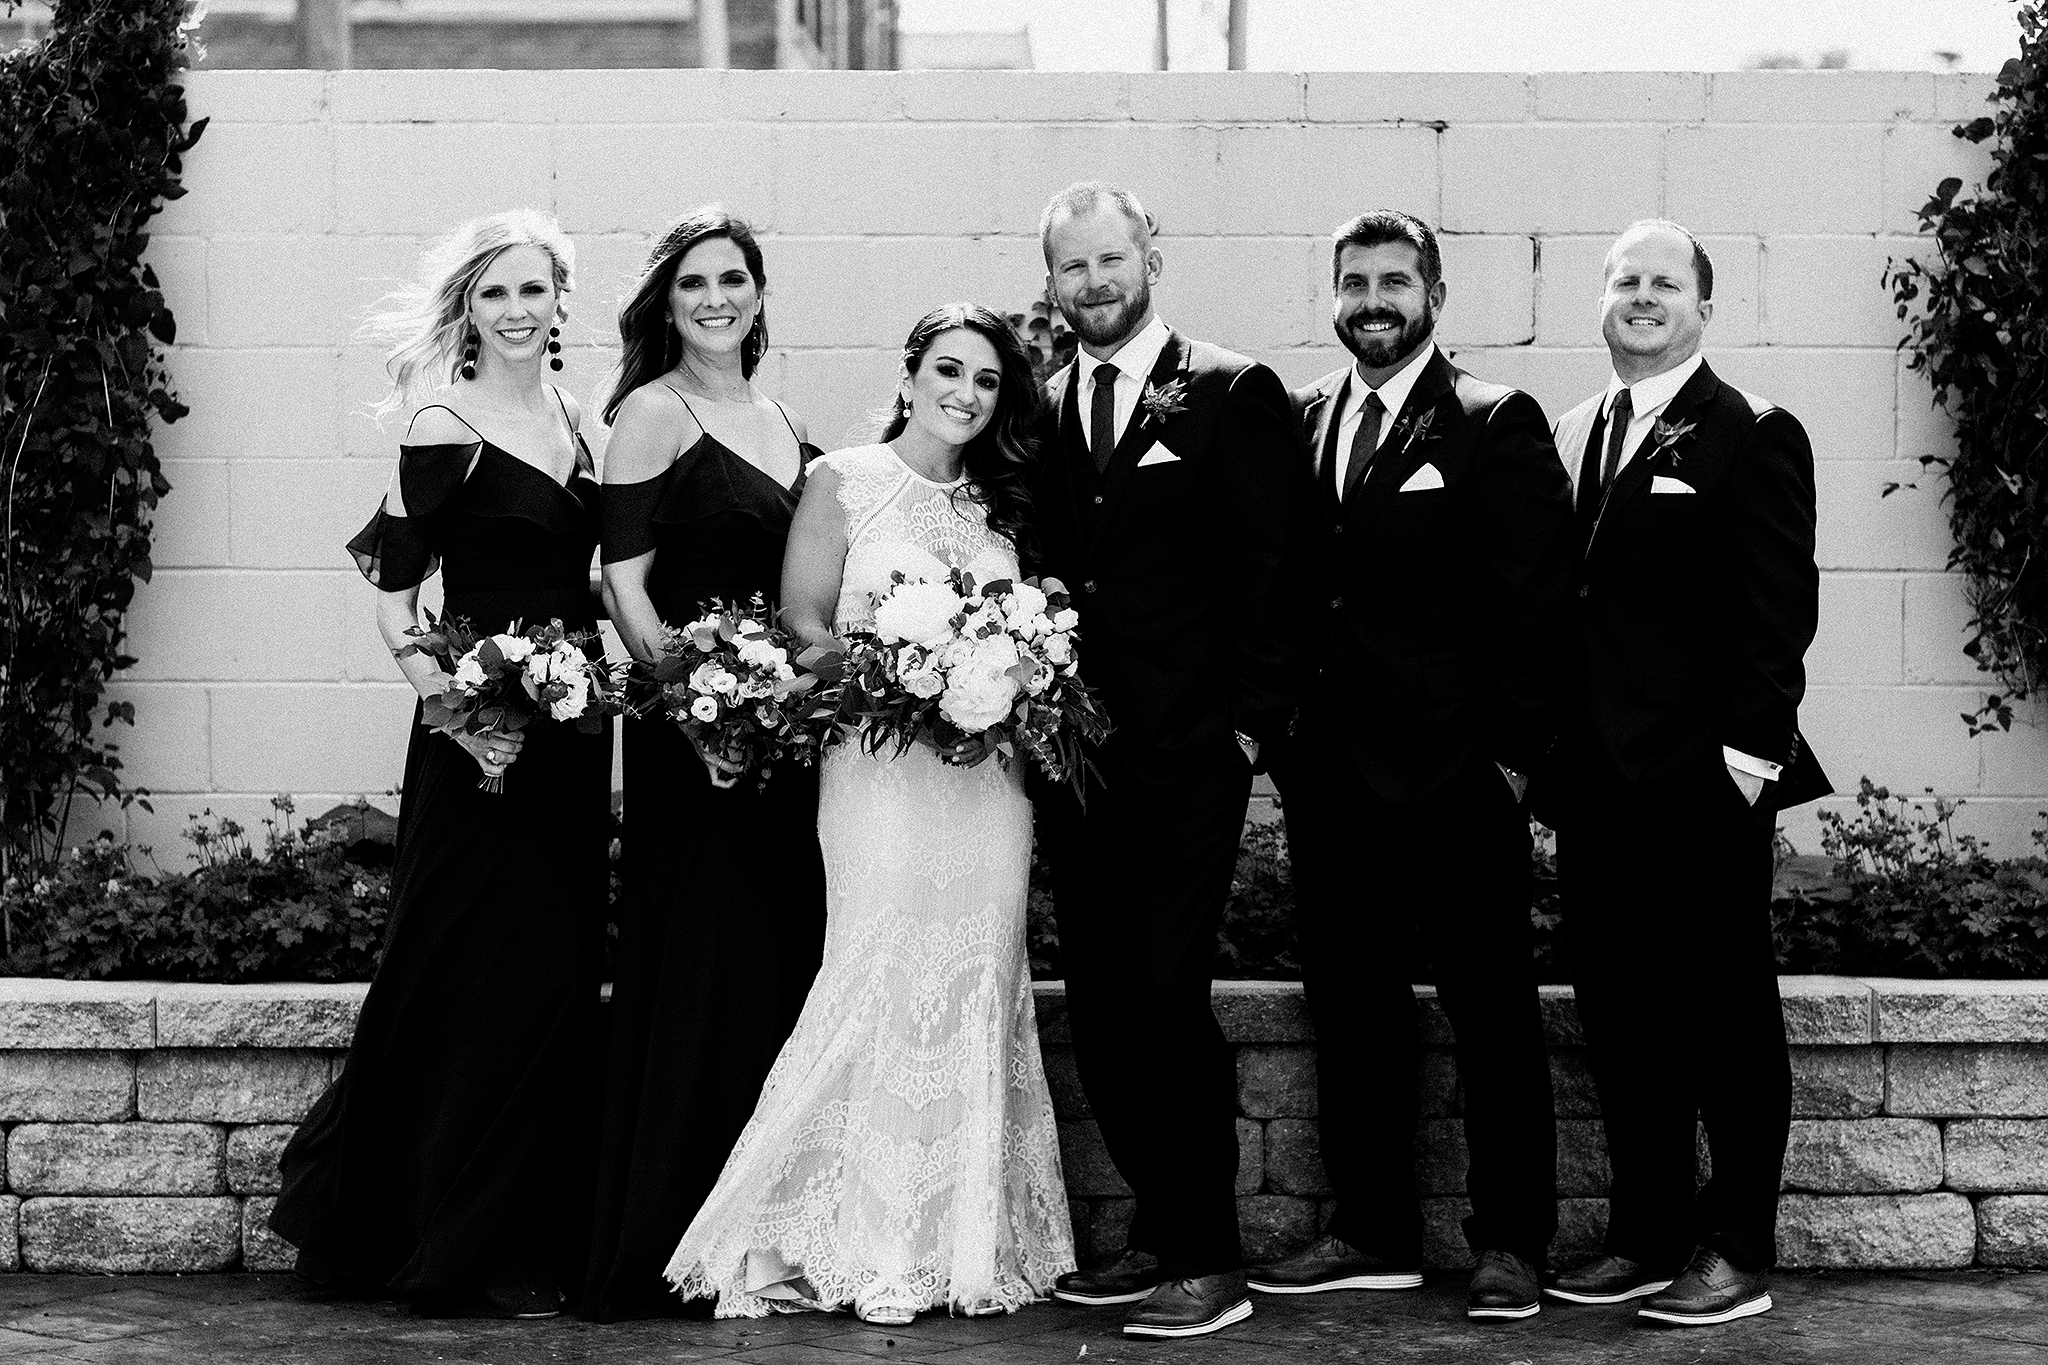 wedding party pictures | the ivy house milwaukee wedding photographer | chrissy deming